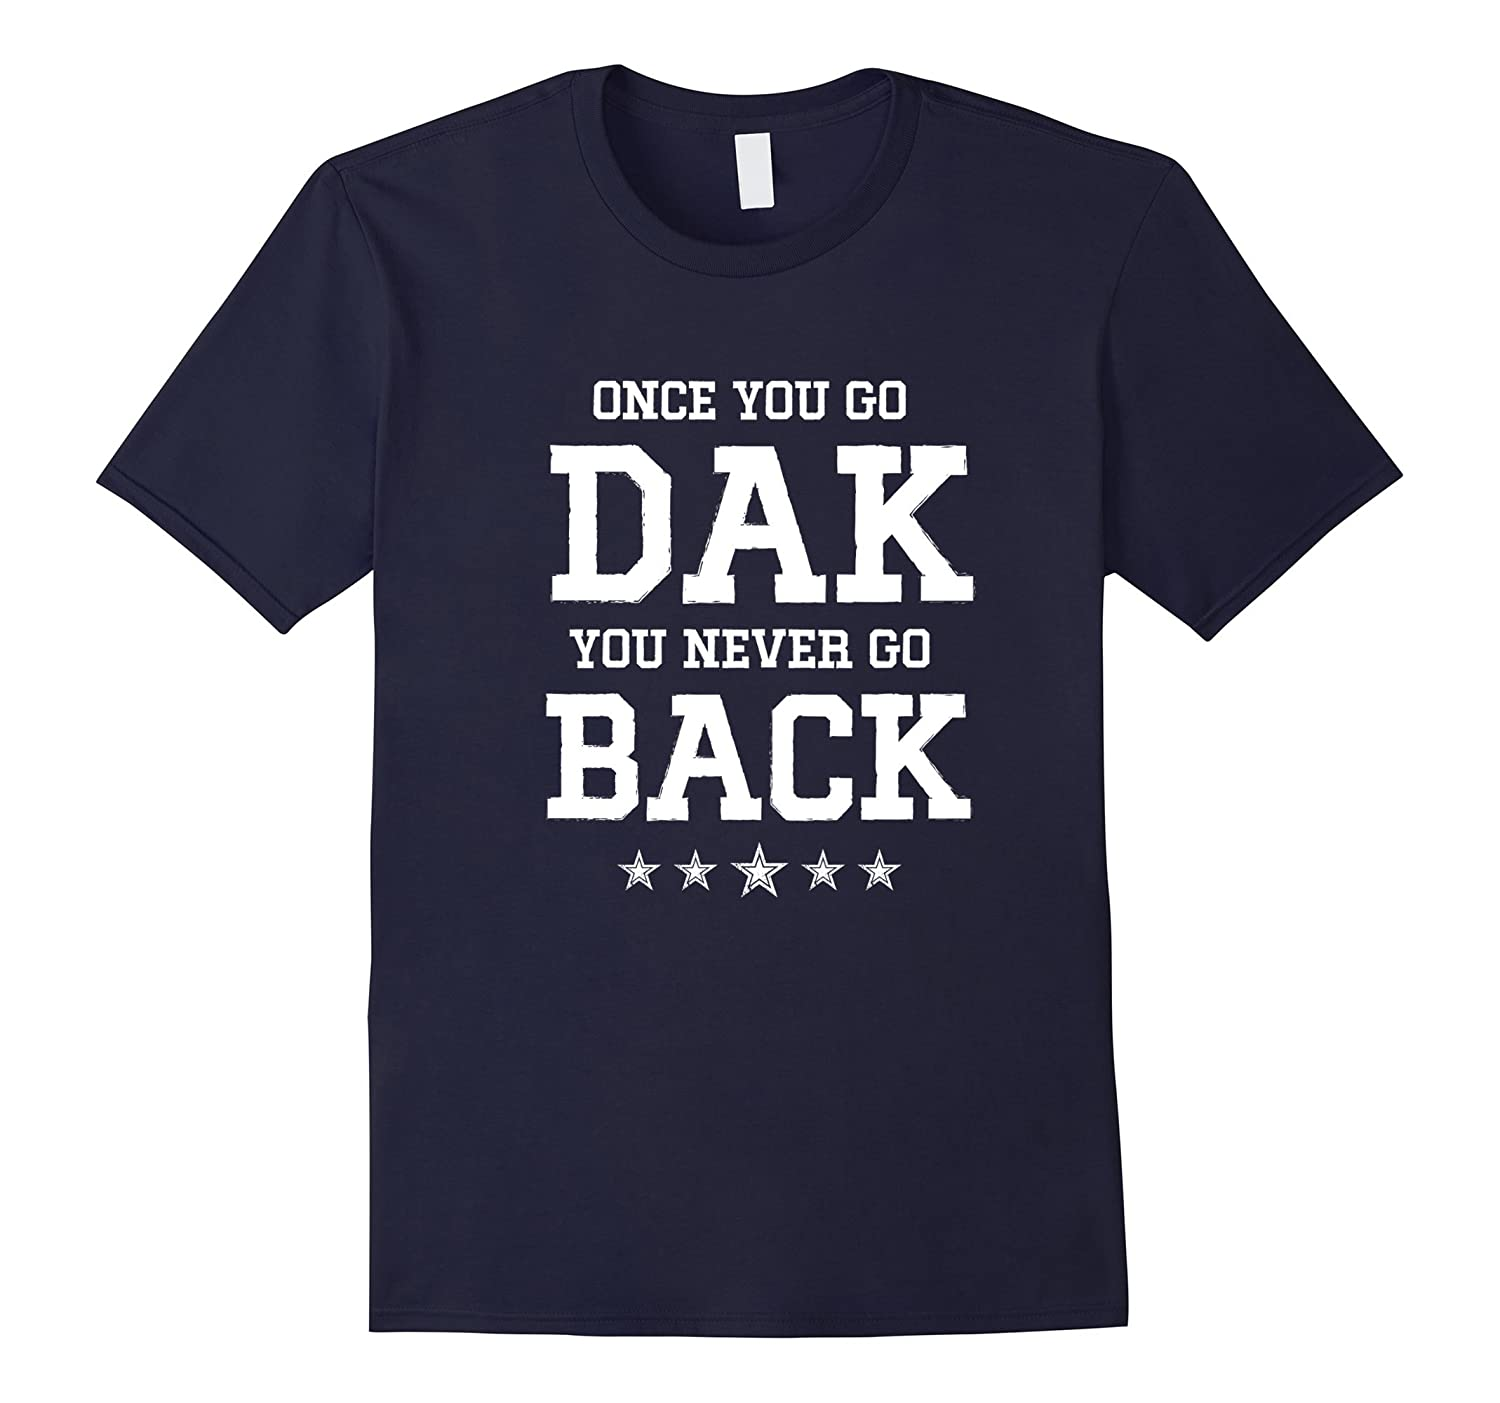 Colorful Tee ONCE YOU GO DAK YOU NEVER GO BACK T-shirt-CL